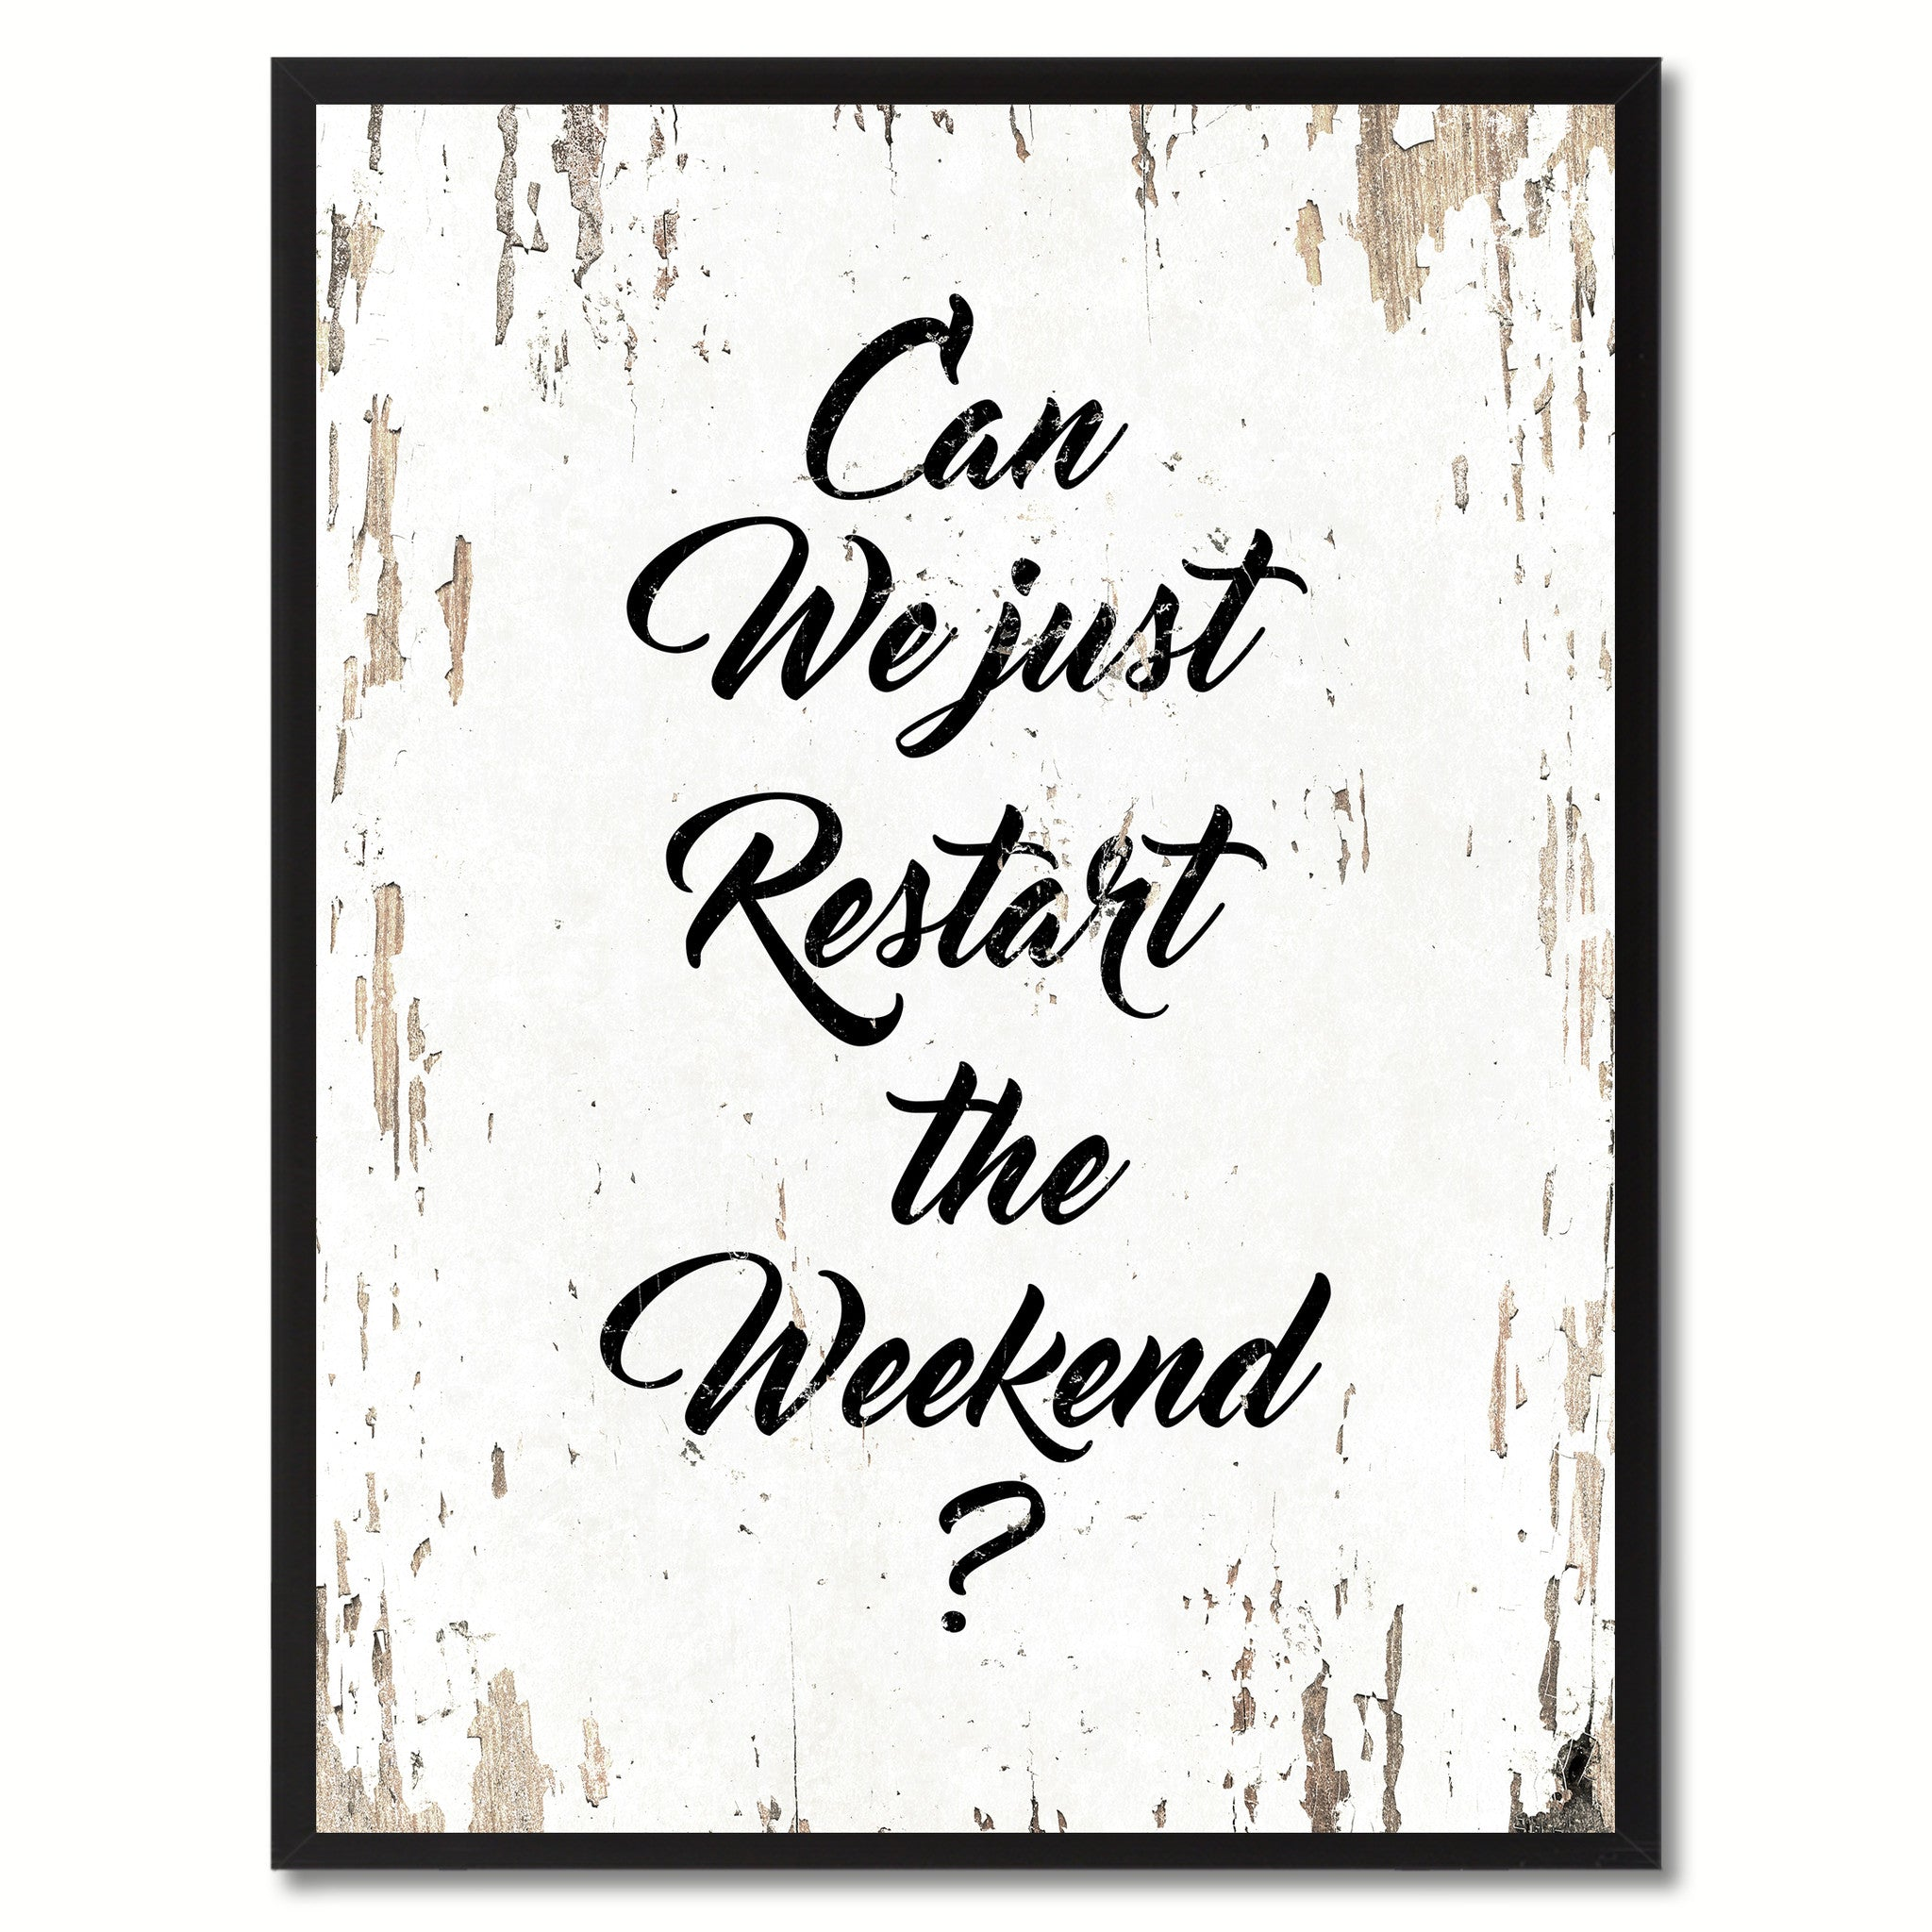 Can We Just Restart The Weekend Saying Black Framed Canvas Print Home Decor Wall Art Gifts 120030 White